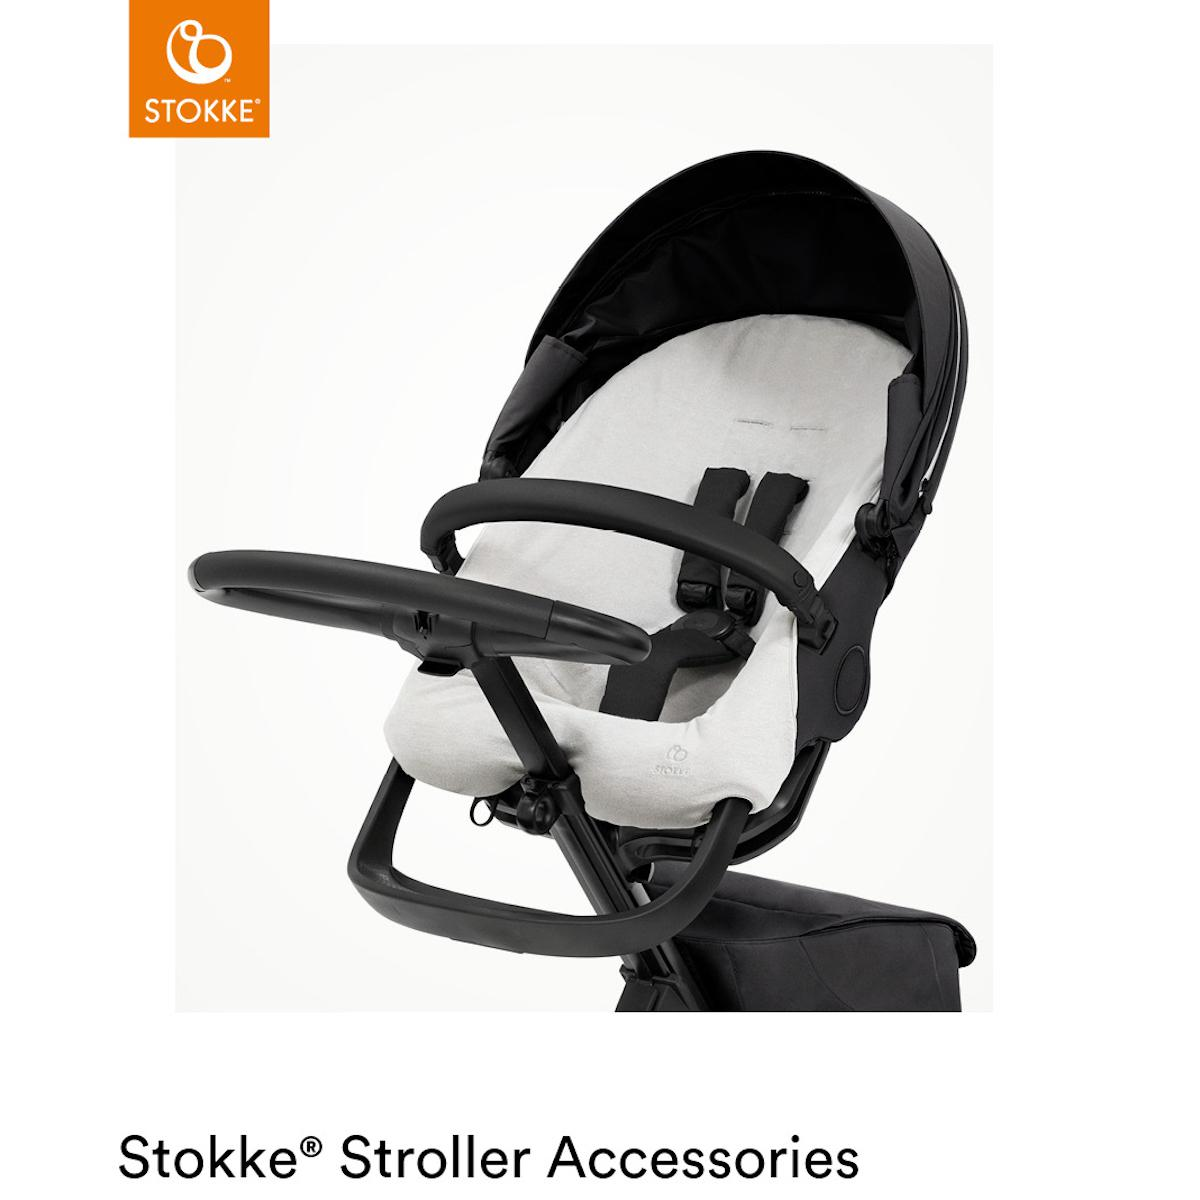 Habillage été XPLORY X Stokke Light Grey